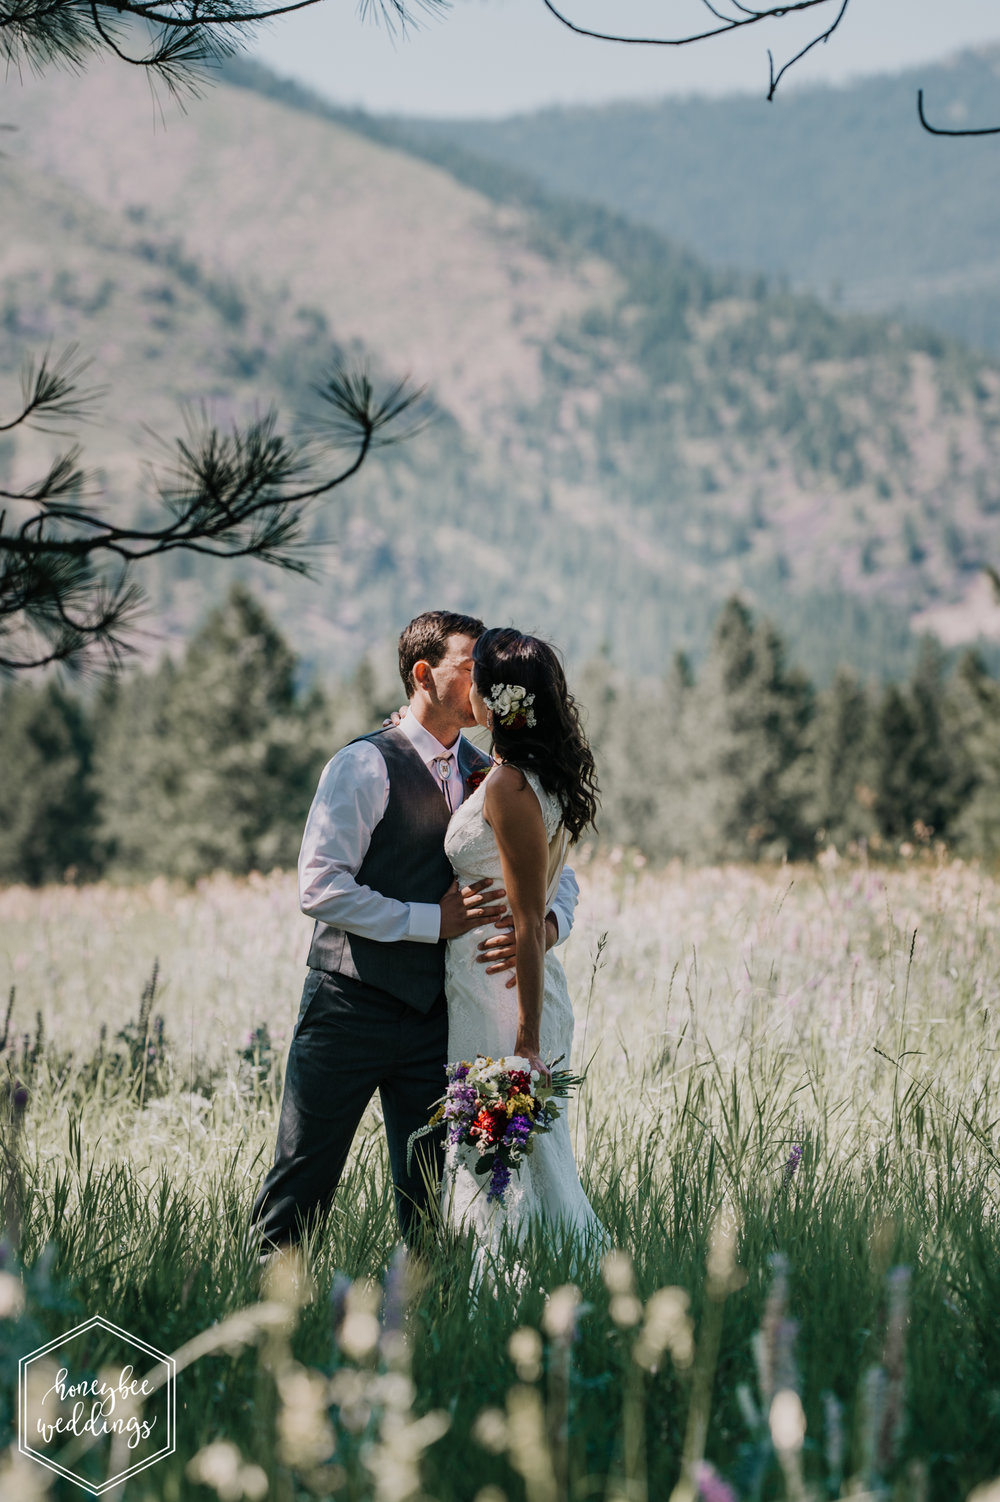 126 White Raven Wedding_Montana Wedding Photographer_Honeybee Weddings_ Meghan Maloney + Arza Hammond 2018-8363.jpg